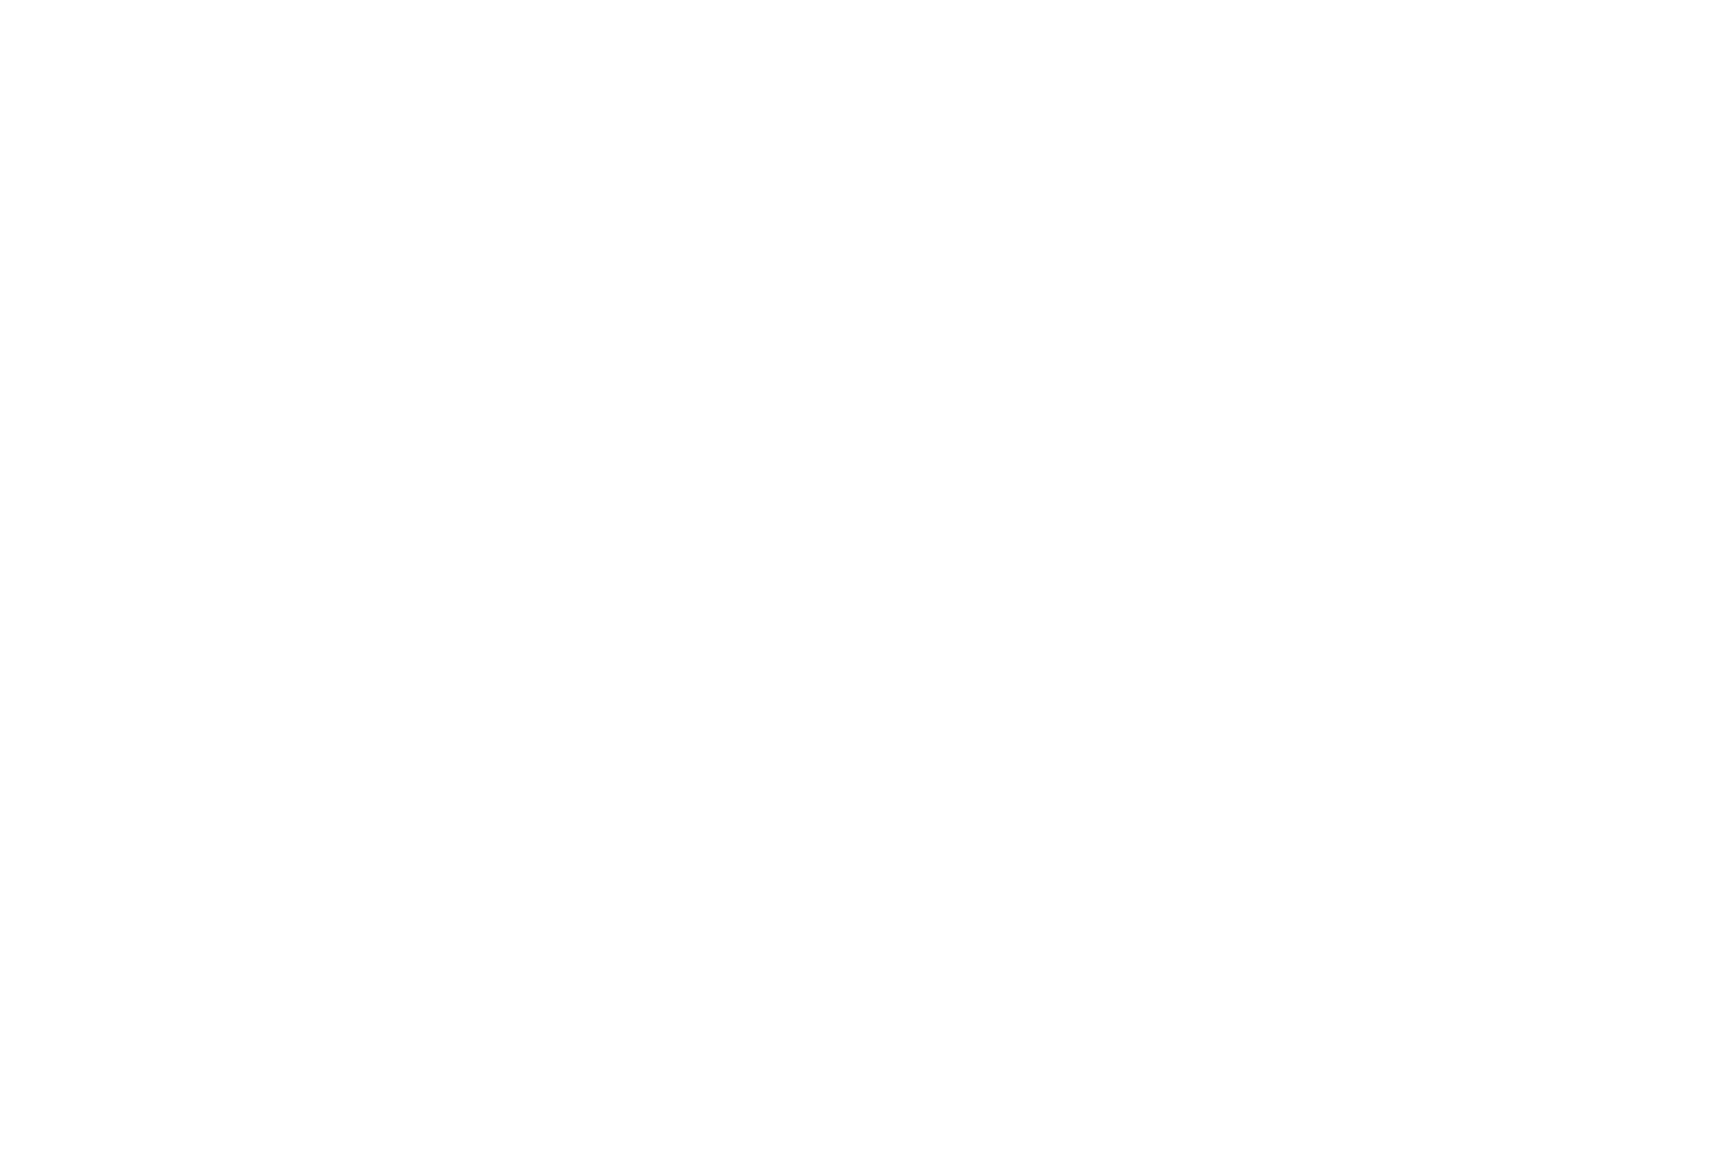 OFFICIAL SELECTION - Direct Monthly Online Film Festival - 2016.png